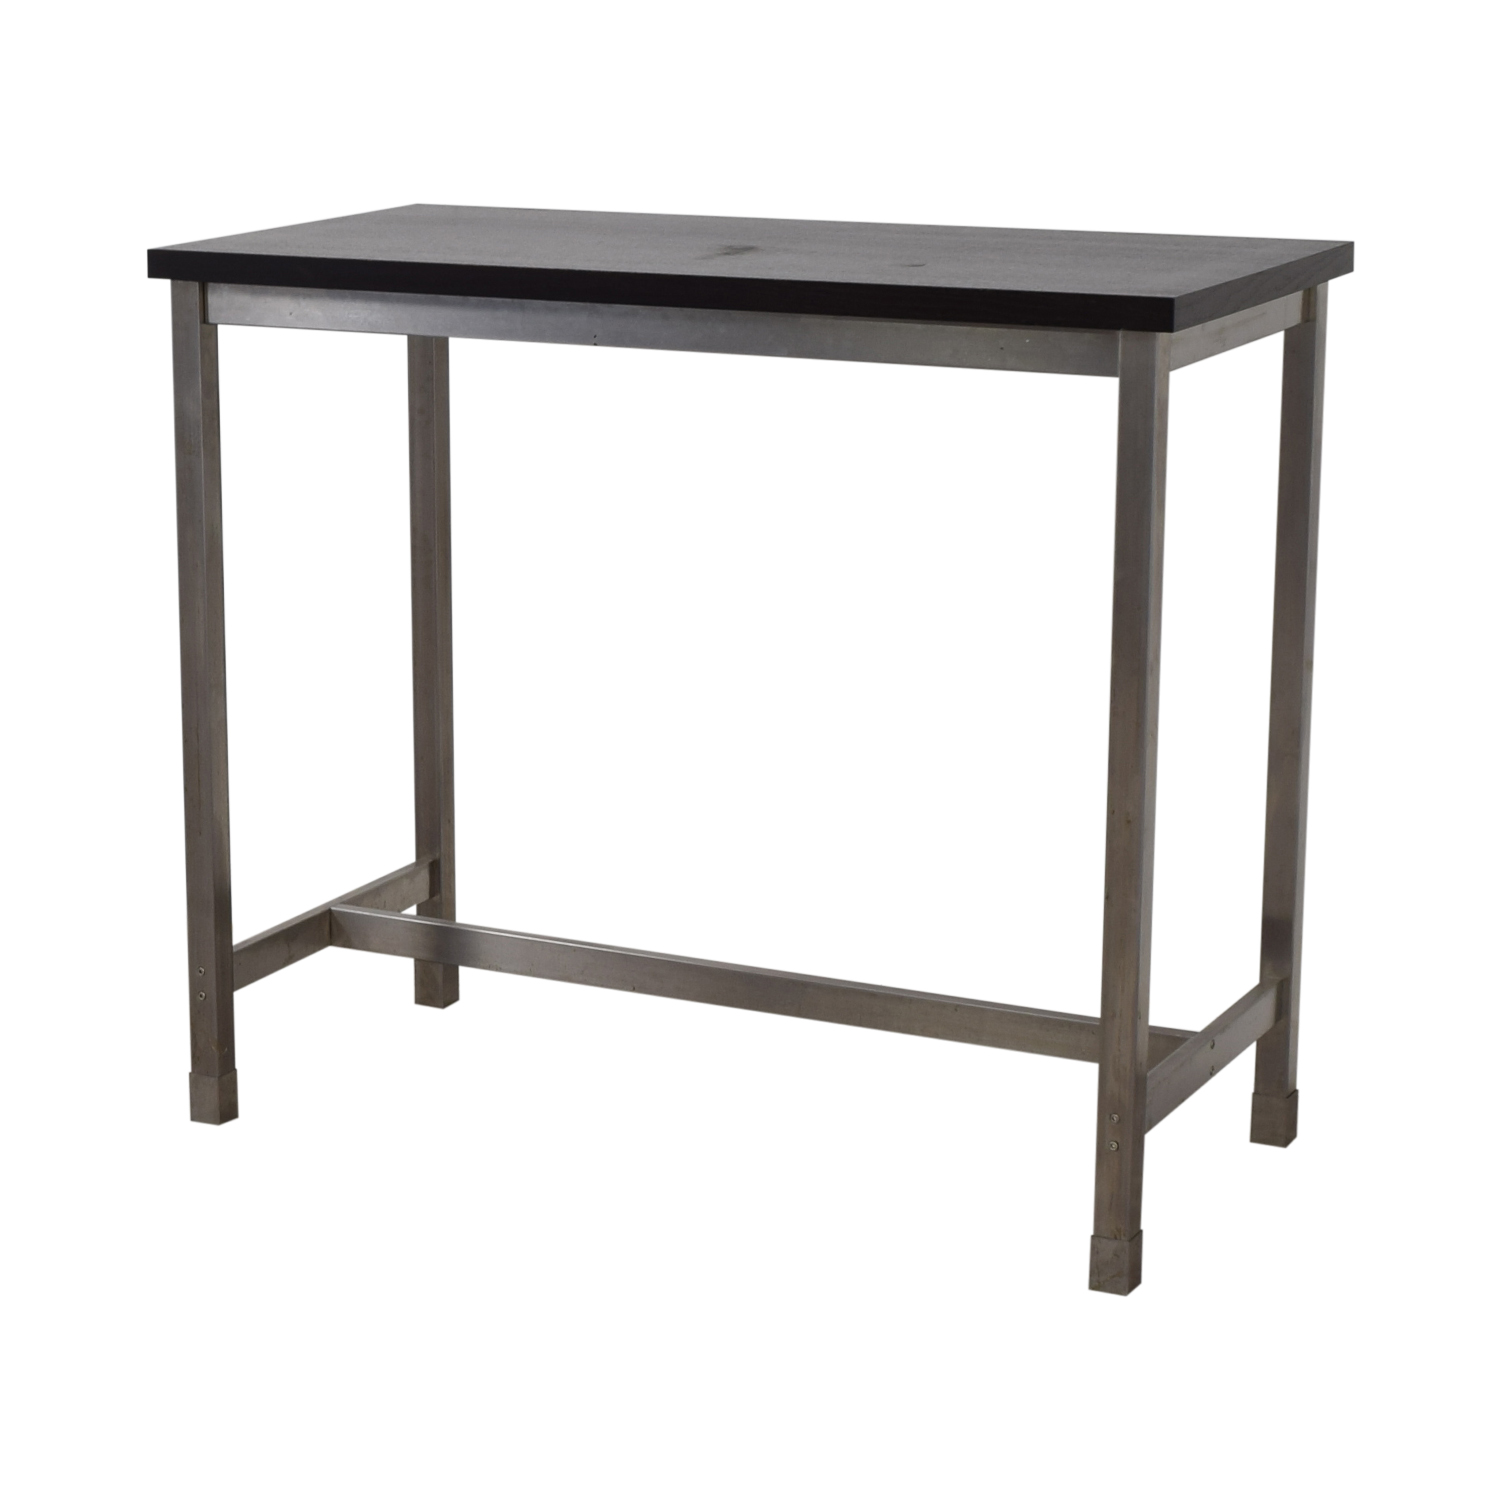 Black and Chrome Standing Desk / Tables